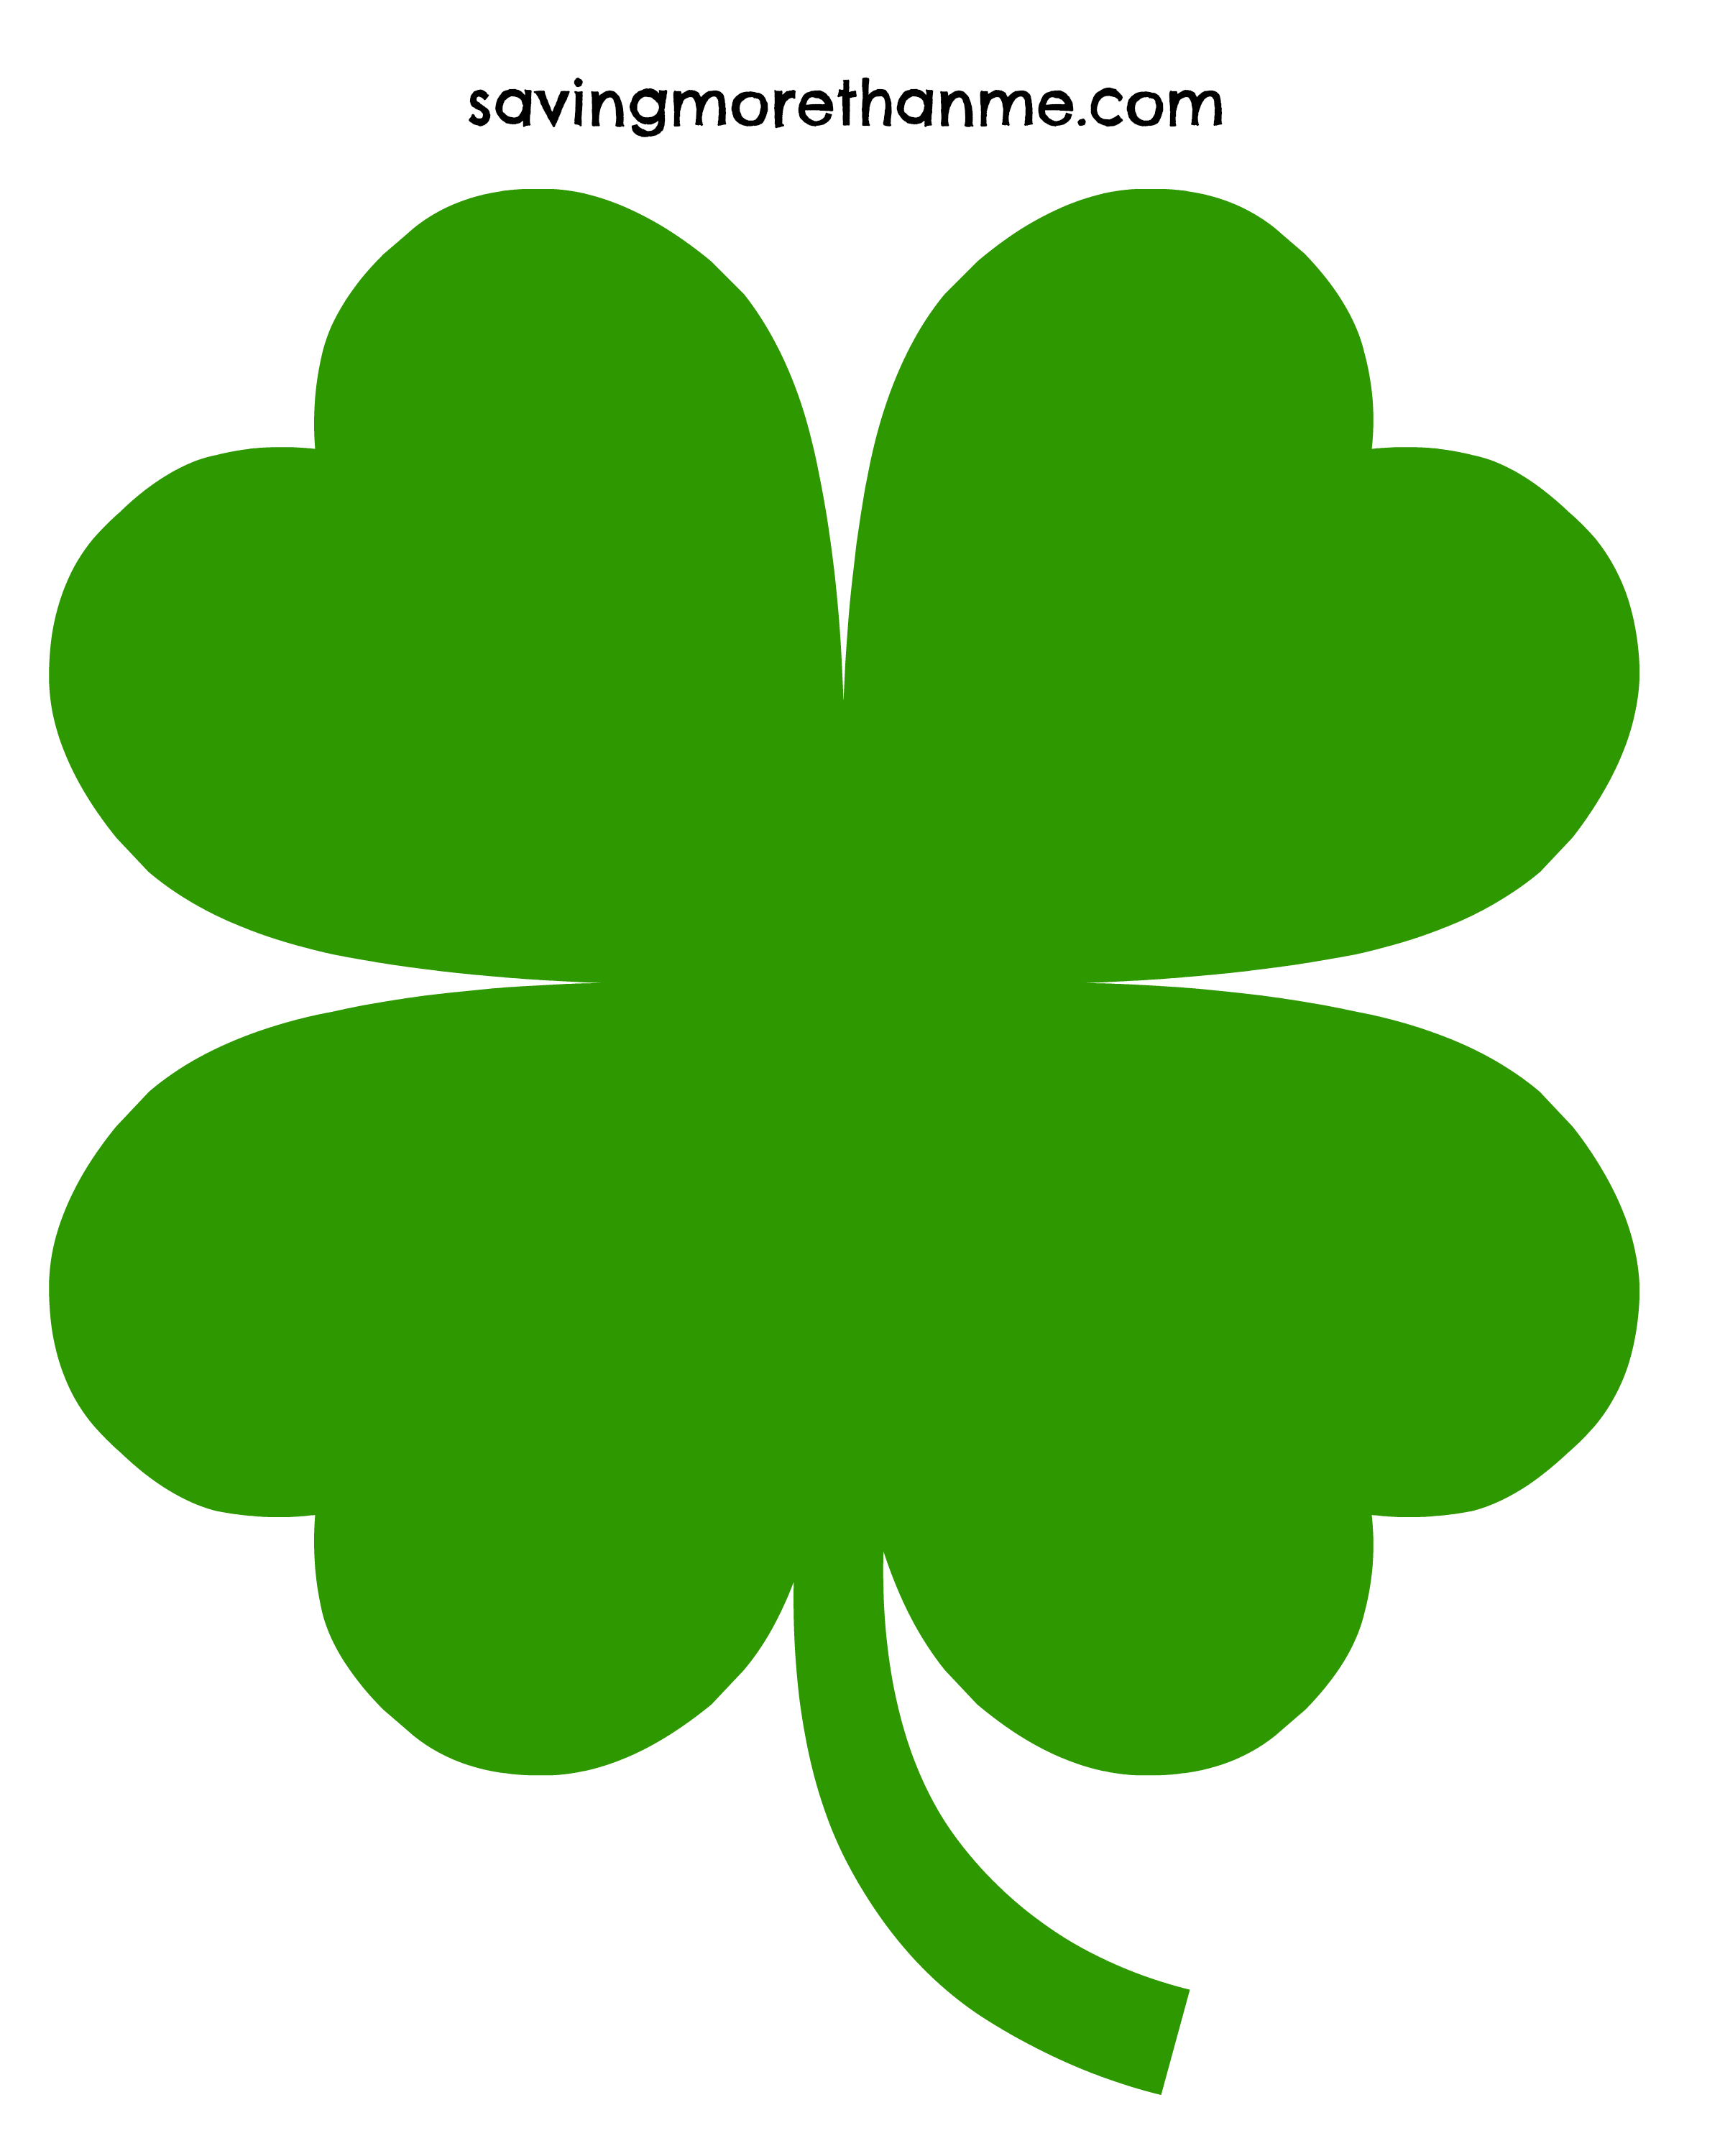 Coloring pages 4 leaf clover - Coloring Page 3 Leaf Clover 4 Leaf Clover Four Leaf Clover Clipart China Cps Clipartix Download